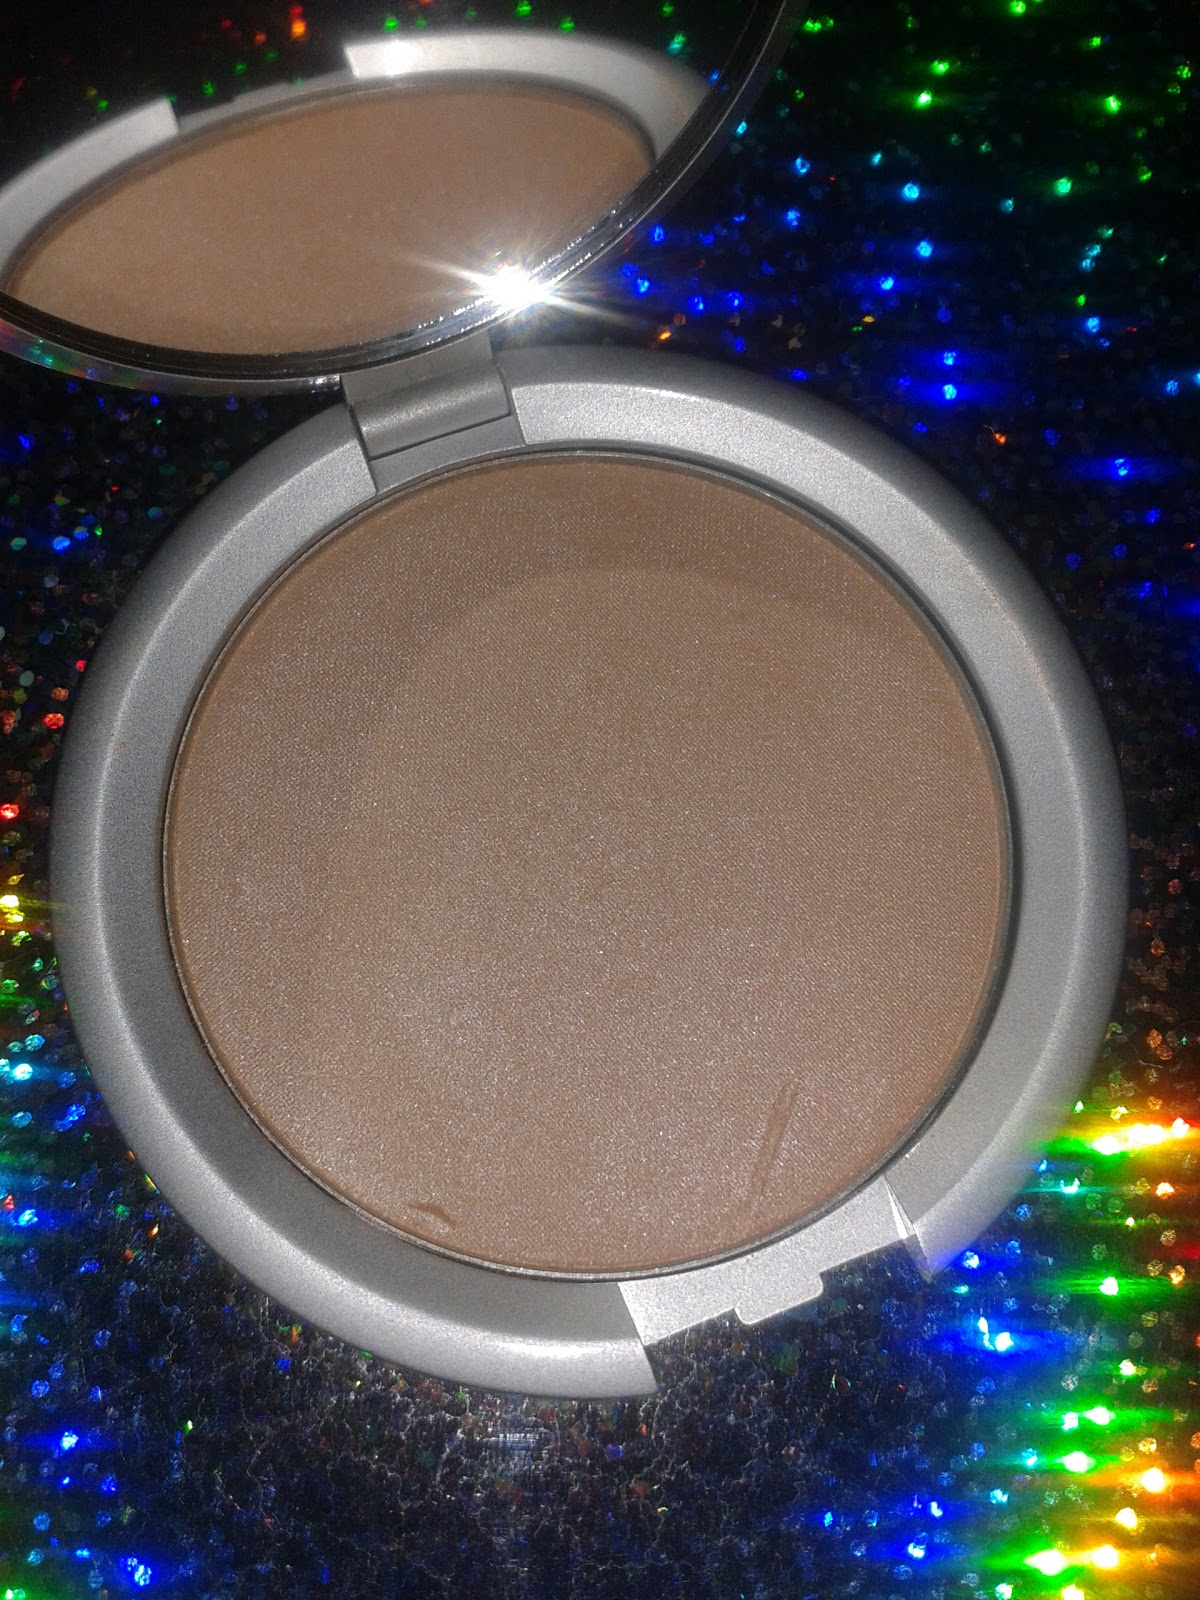 The Cocoa Dynasty Lorac Perfectly Lit Luminizing Powder Radiant